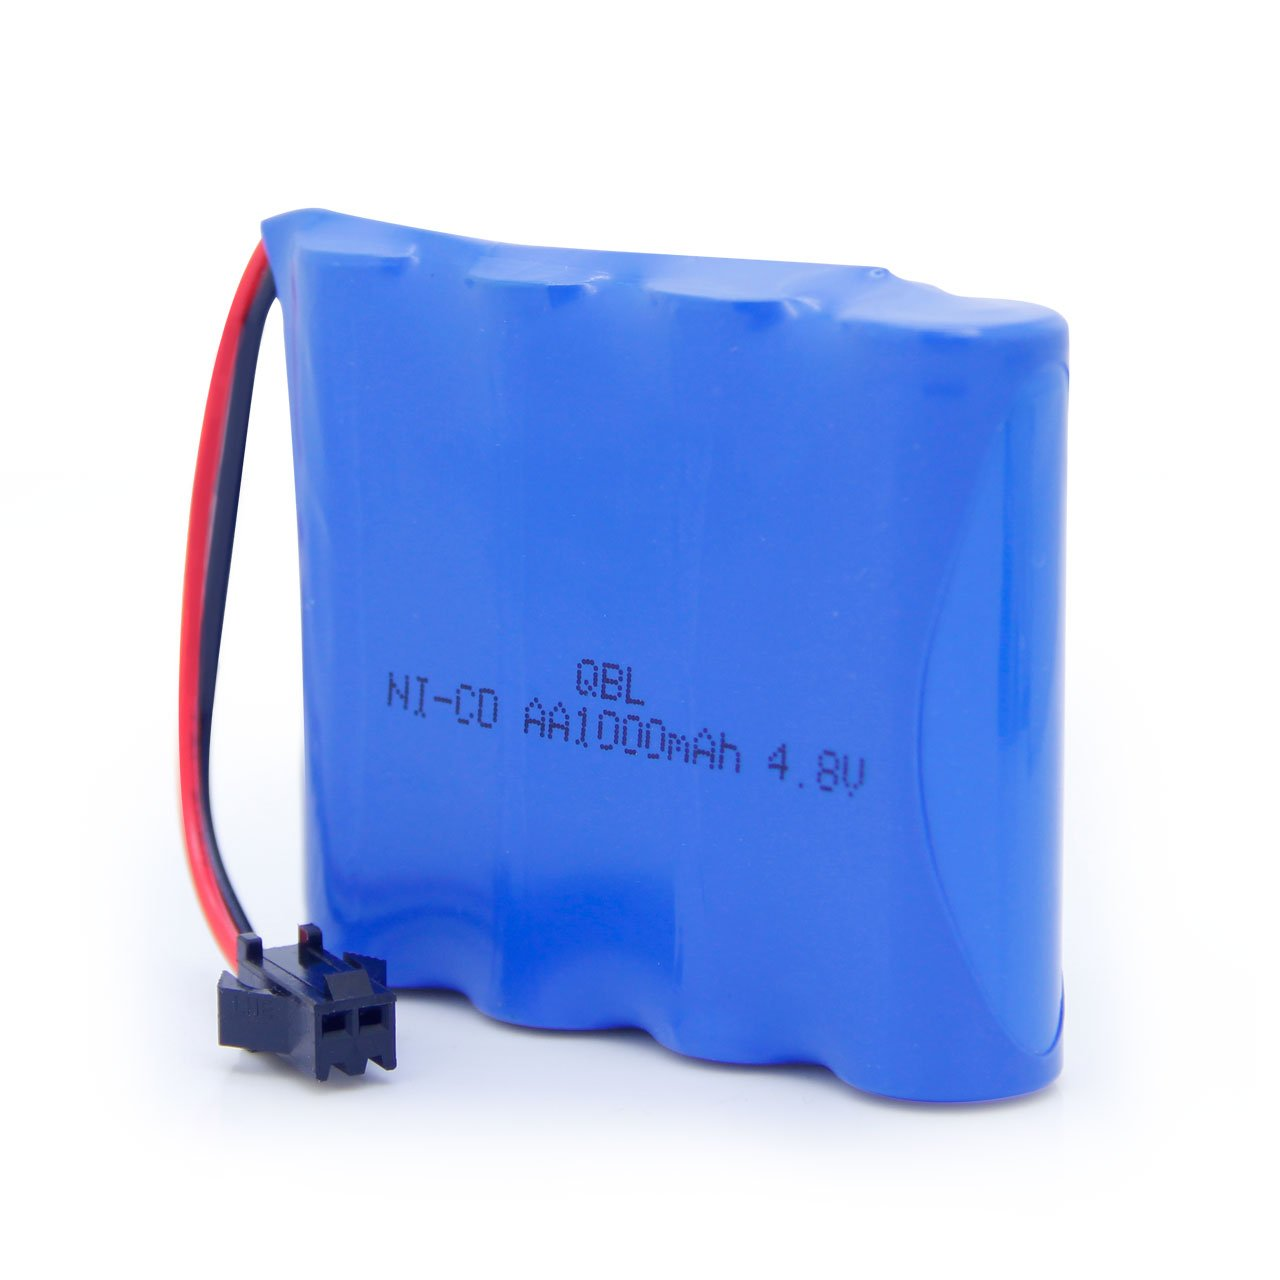 QBLPOWER 4.8V 1000mAh Ni-Cd AA Battery Pack Compatible with SZJJX RC Rock Off-Road Vehicle 2.4Ghz 4WD High Speed 1:18 Racing Cars Haktoys HAK101 RC Stunt Car and HAK155 RC Buggy